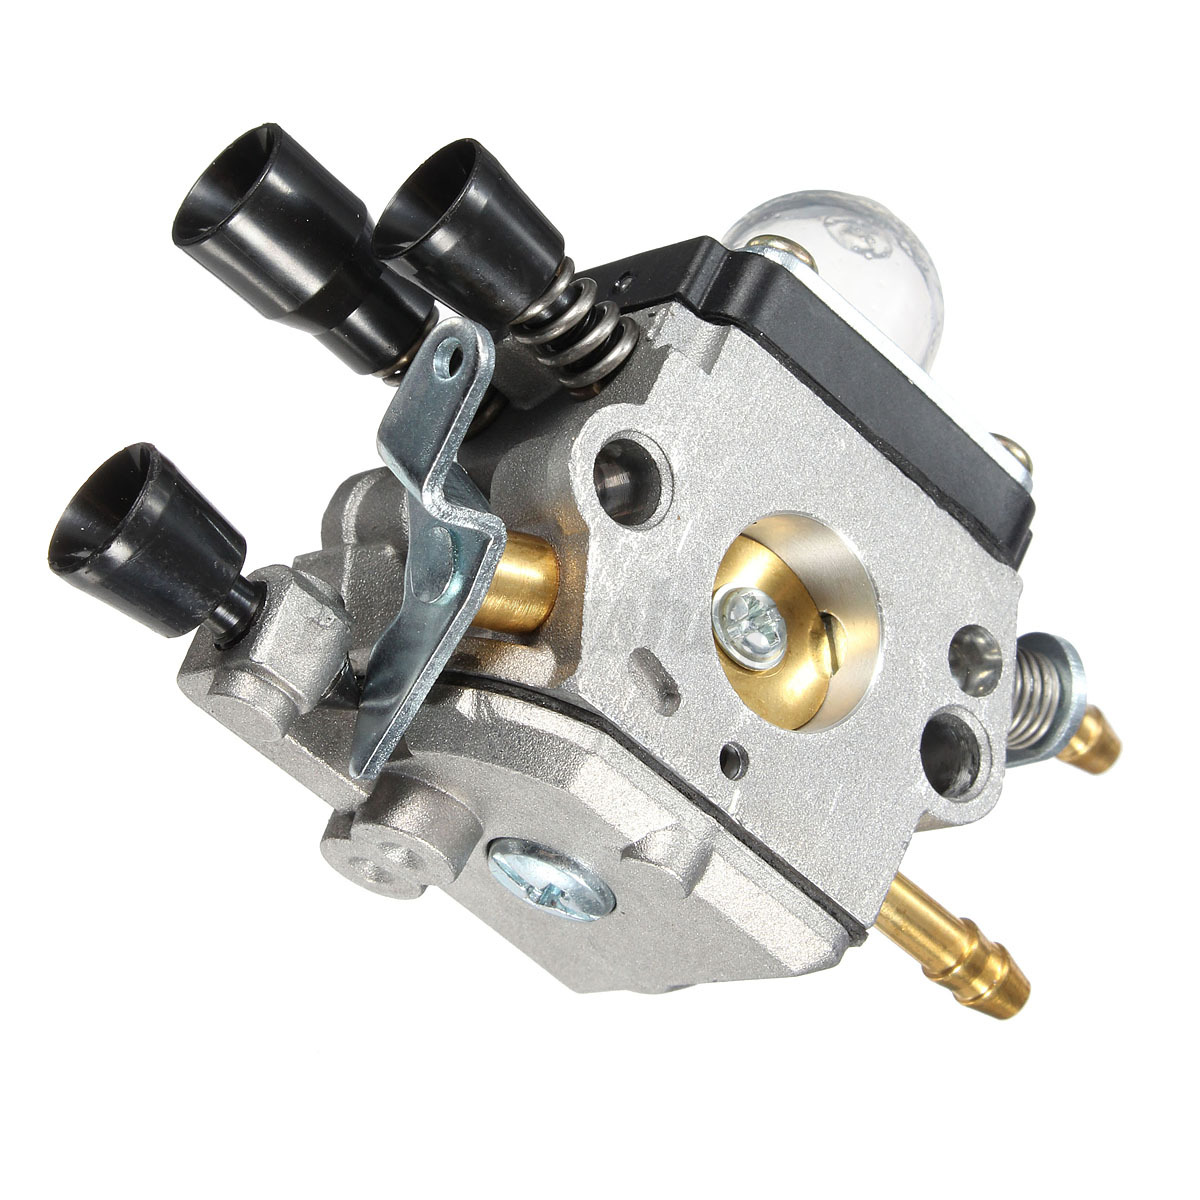 Stihl Blower Parts Manual Chainsaw Diagram Further Carburetor Carb Carburettor Part For 1200x1200